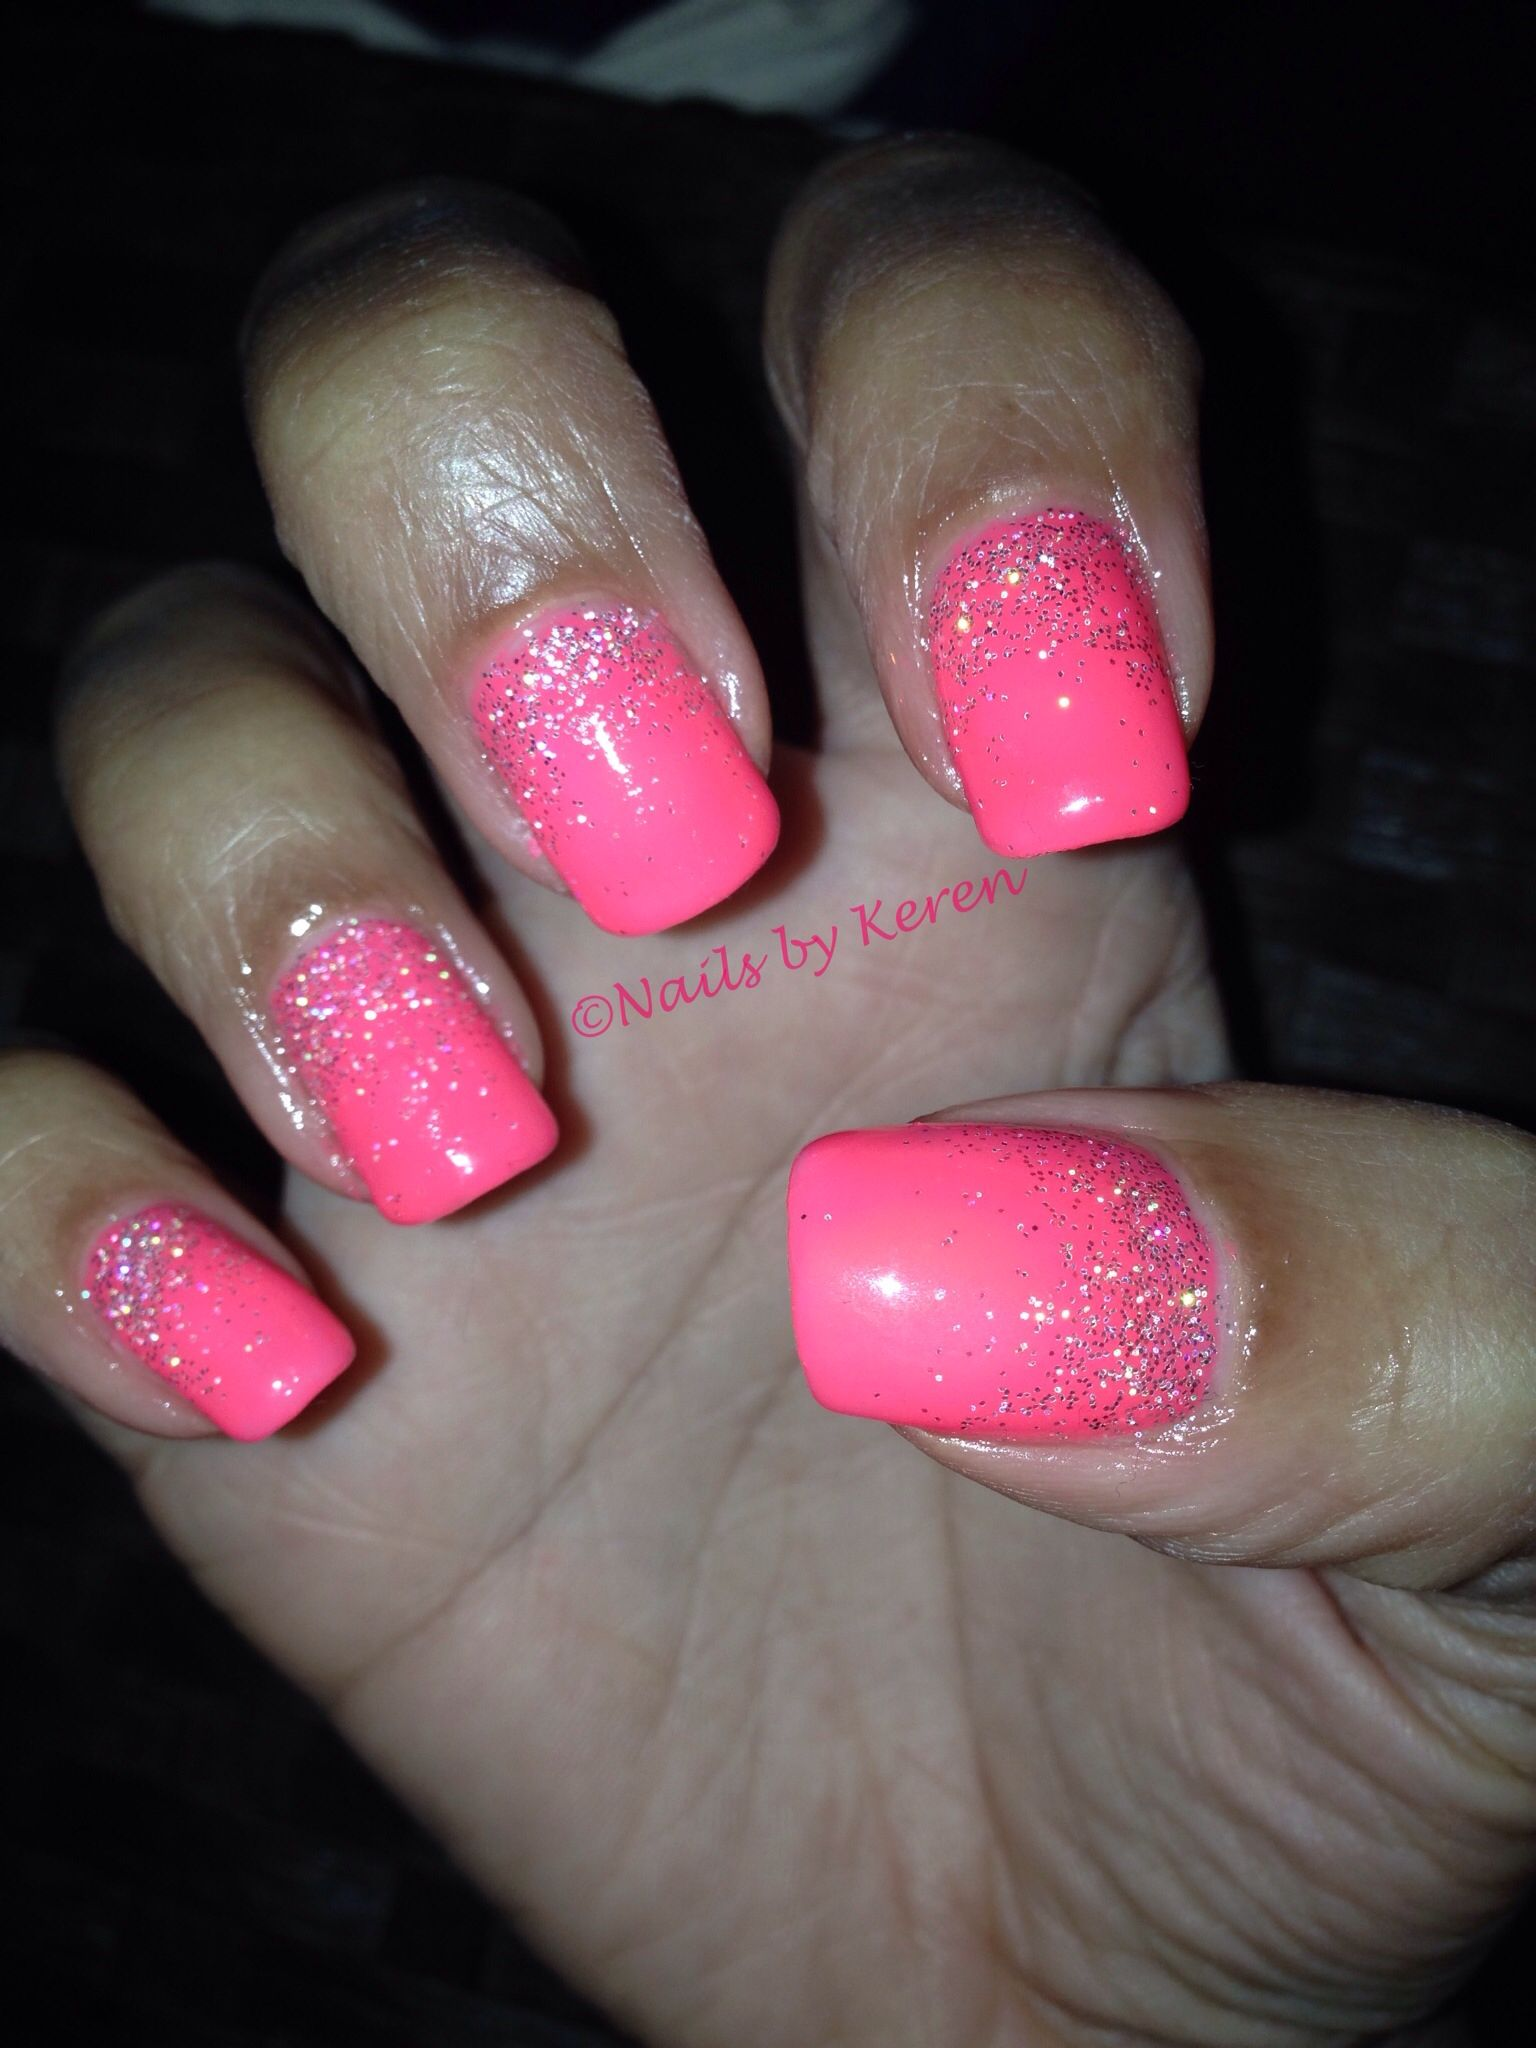 Neon pink gel polish and glitterfade. Nails 2014 | Nails | Pinterest ...